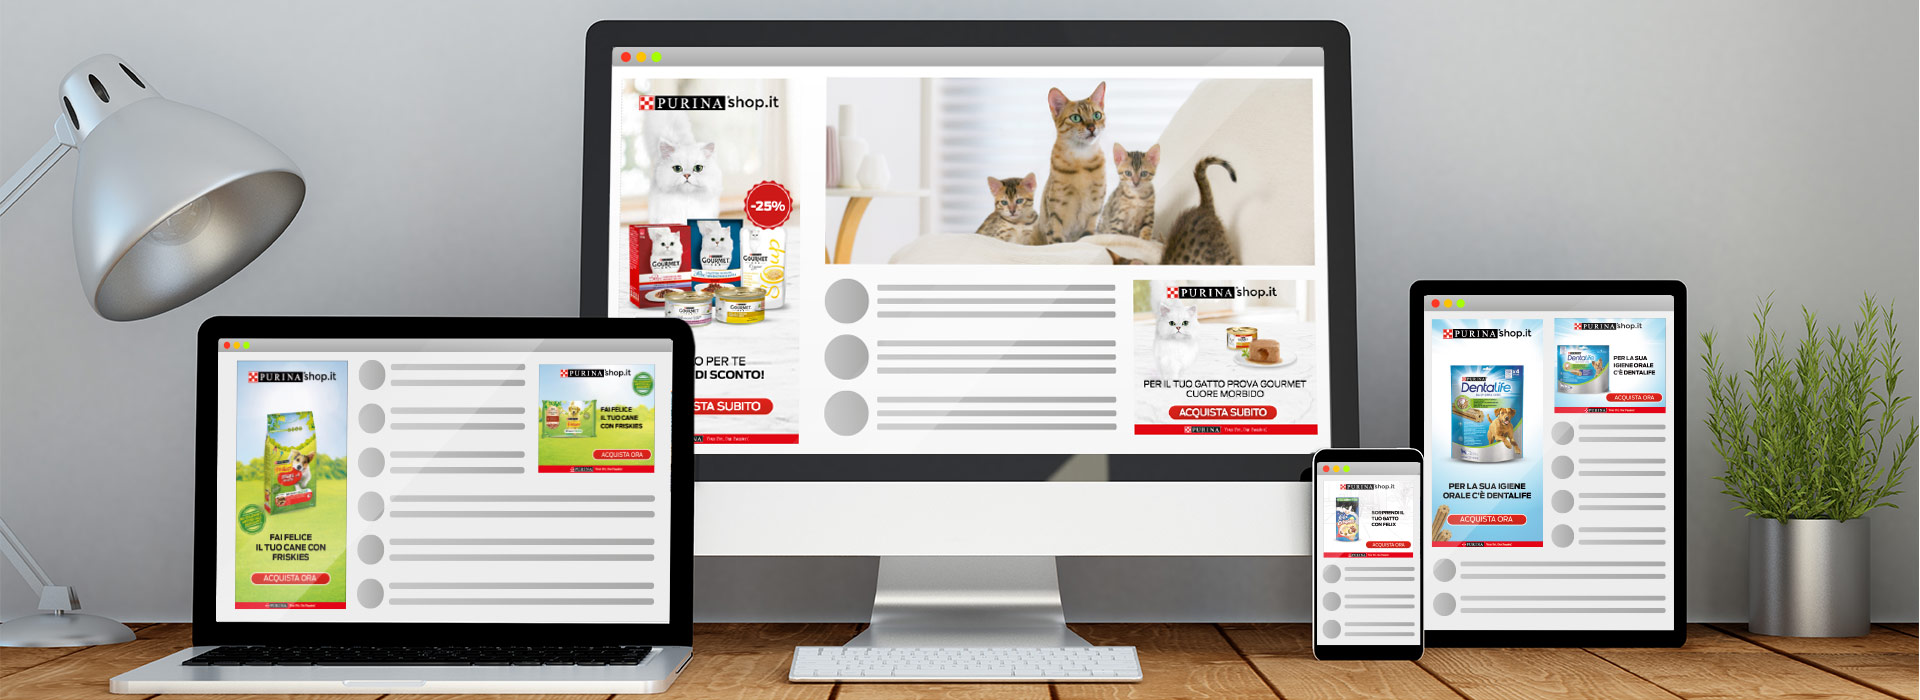 annunci dinamici rete display per ecommerce Purinashop